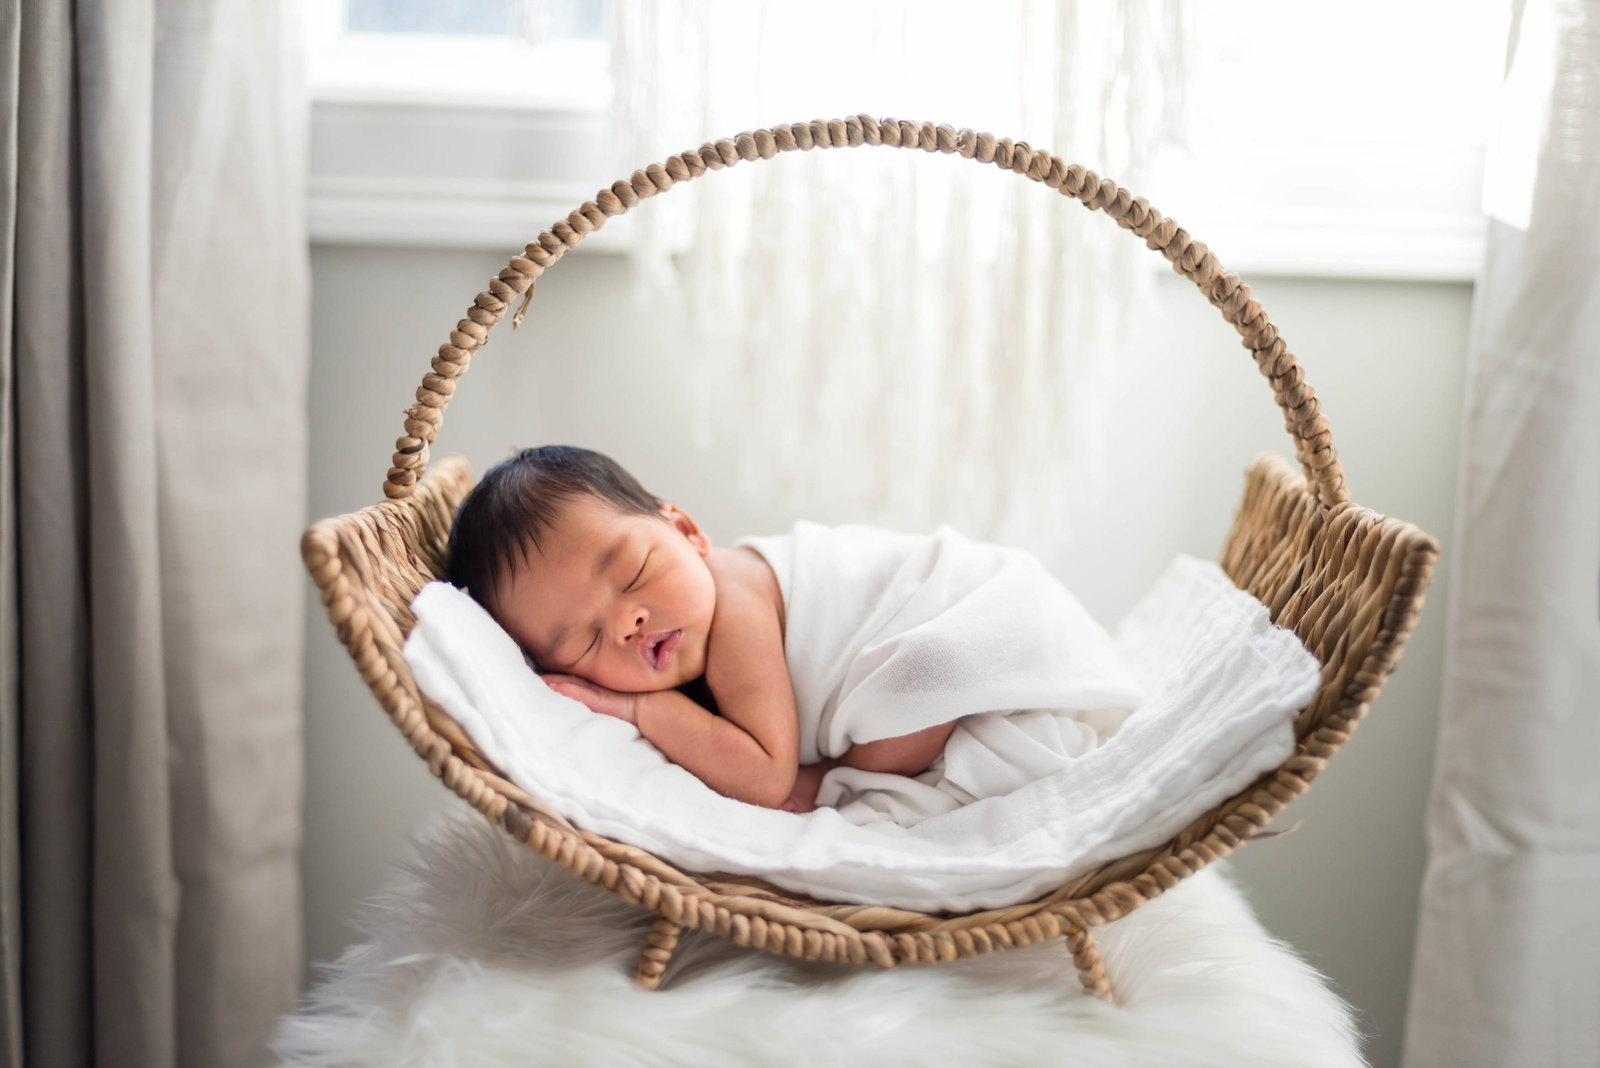 Boston-Newborn-Photographer-Lifestyle-Documentary-Home-Styled-Session-422